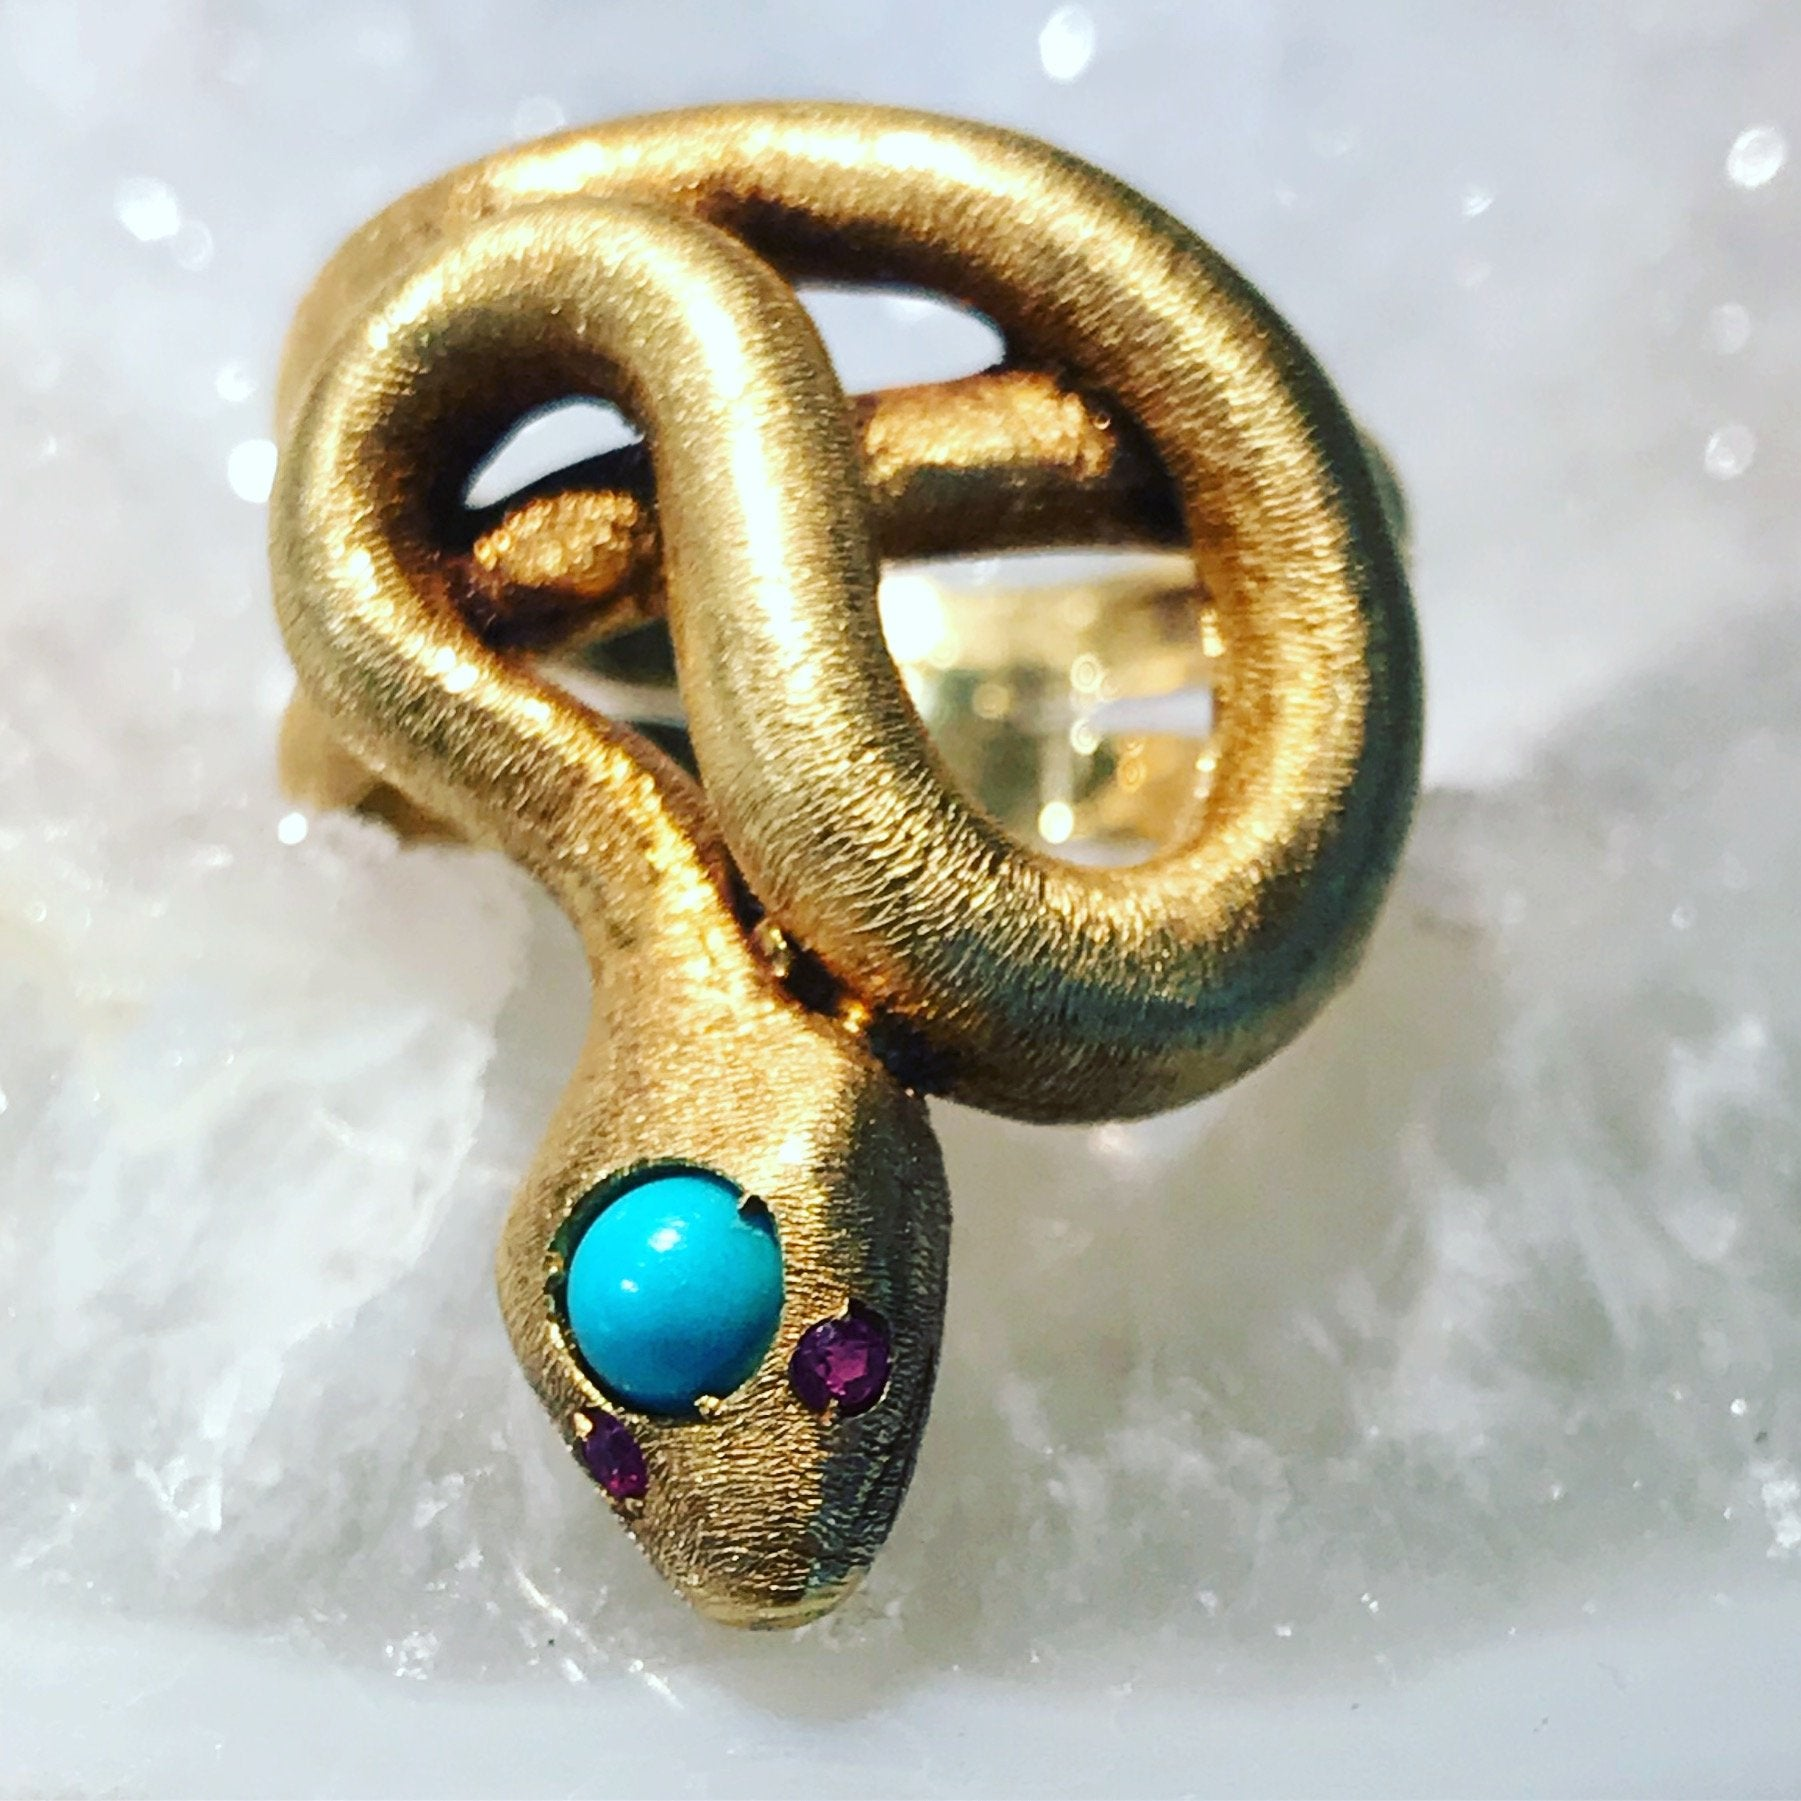 Vintage Snake ring with turquoise and ruby